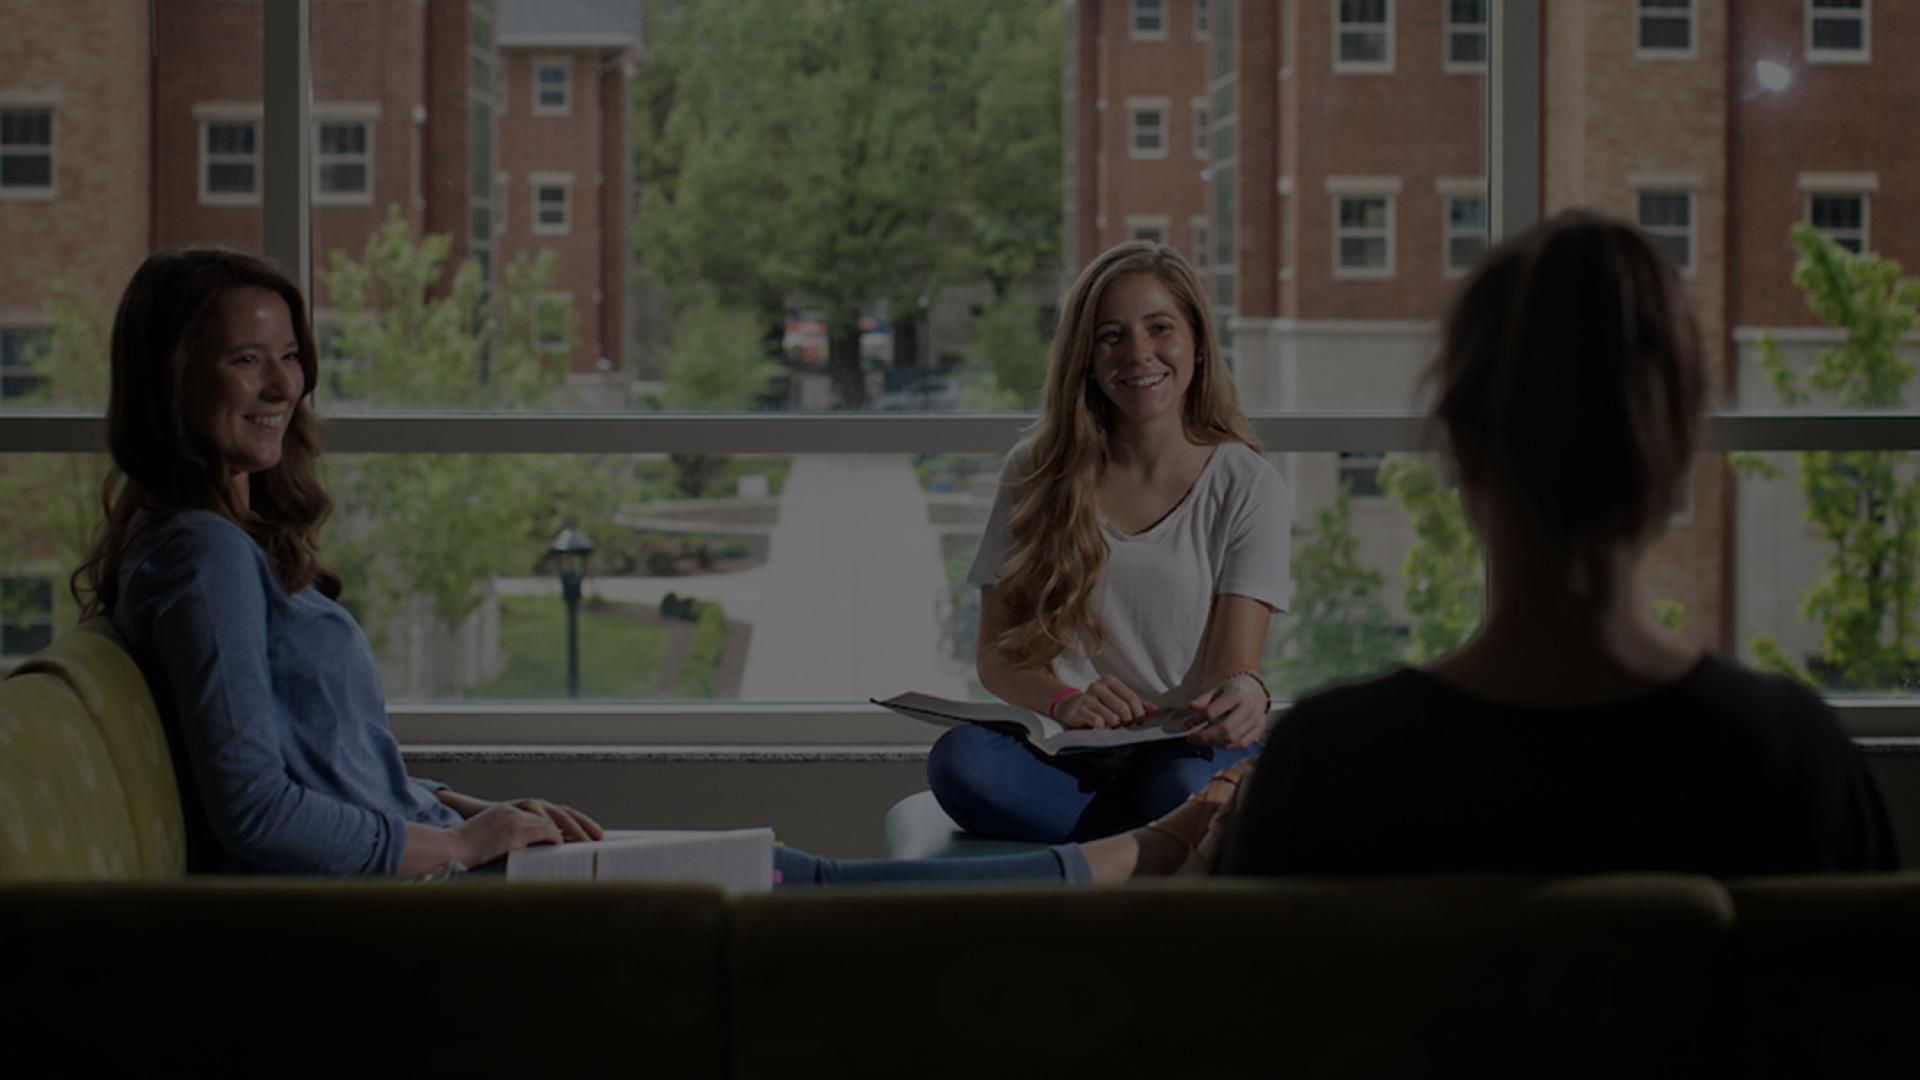 Three female students study together in the common area of a residence hall